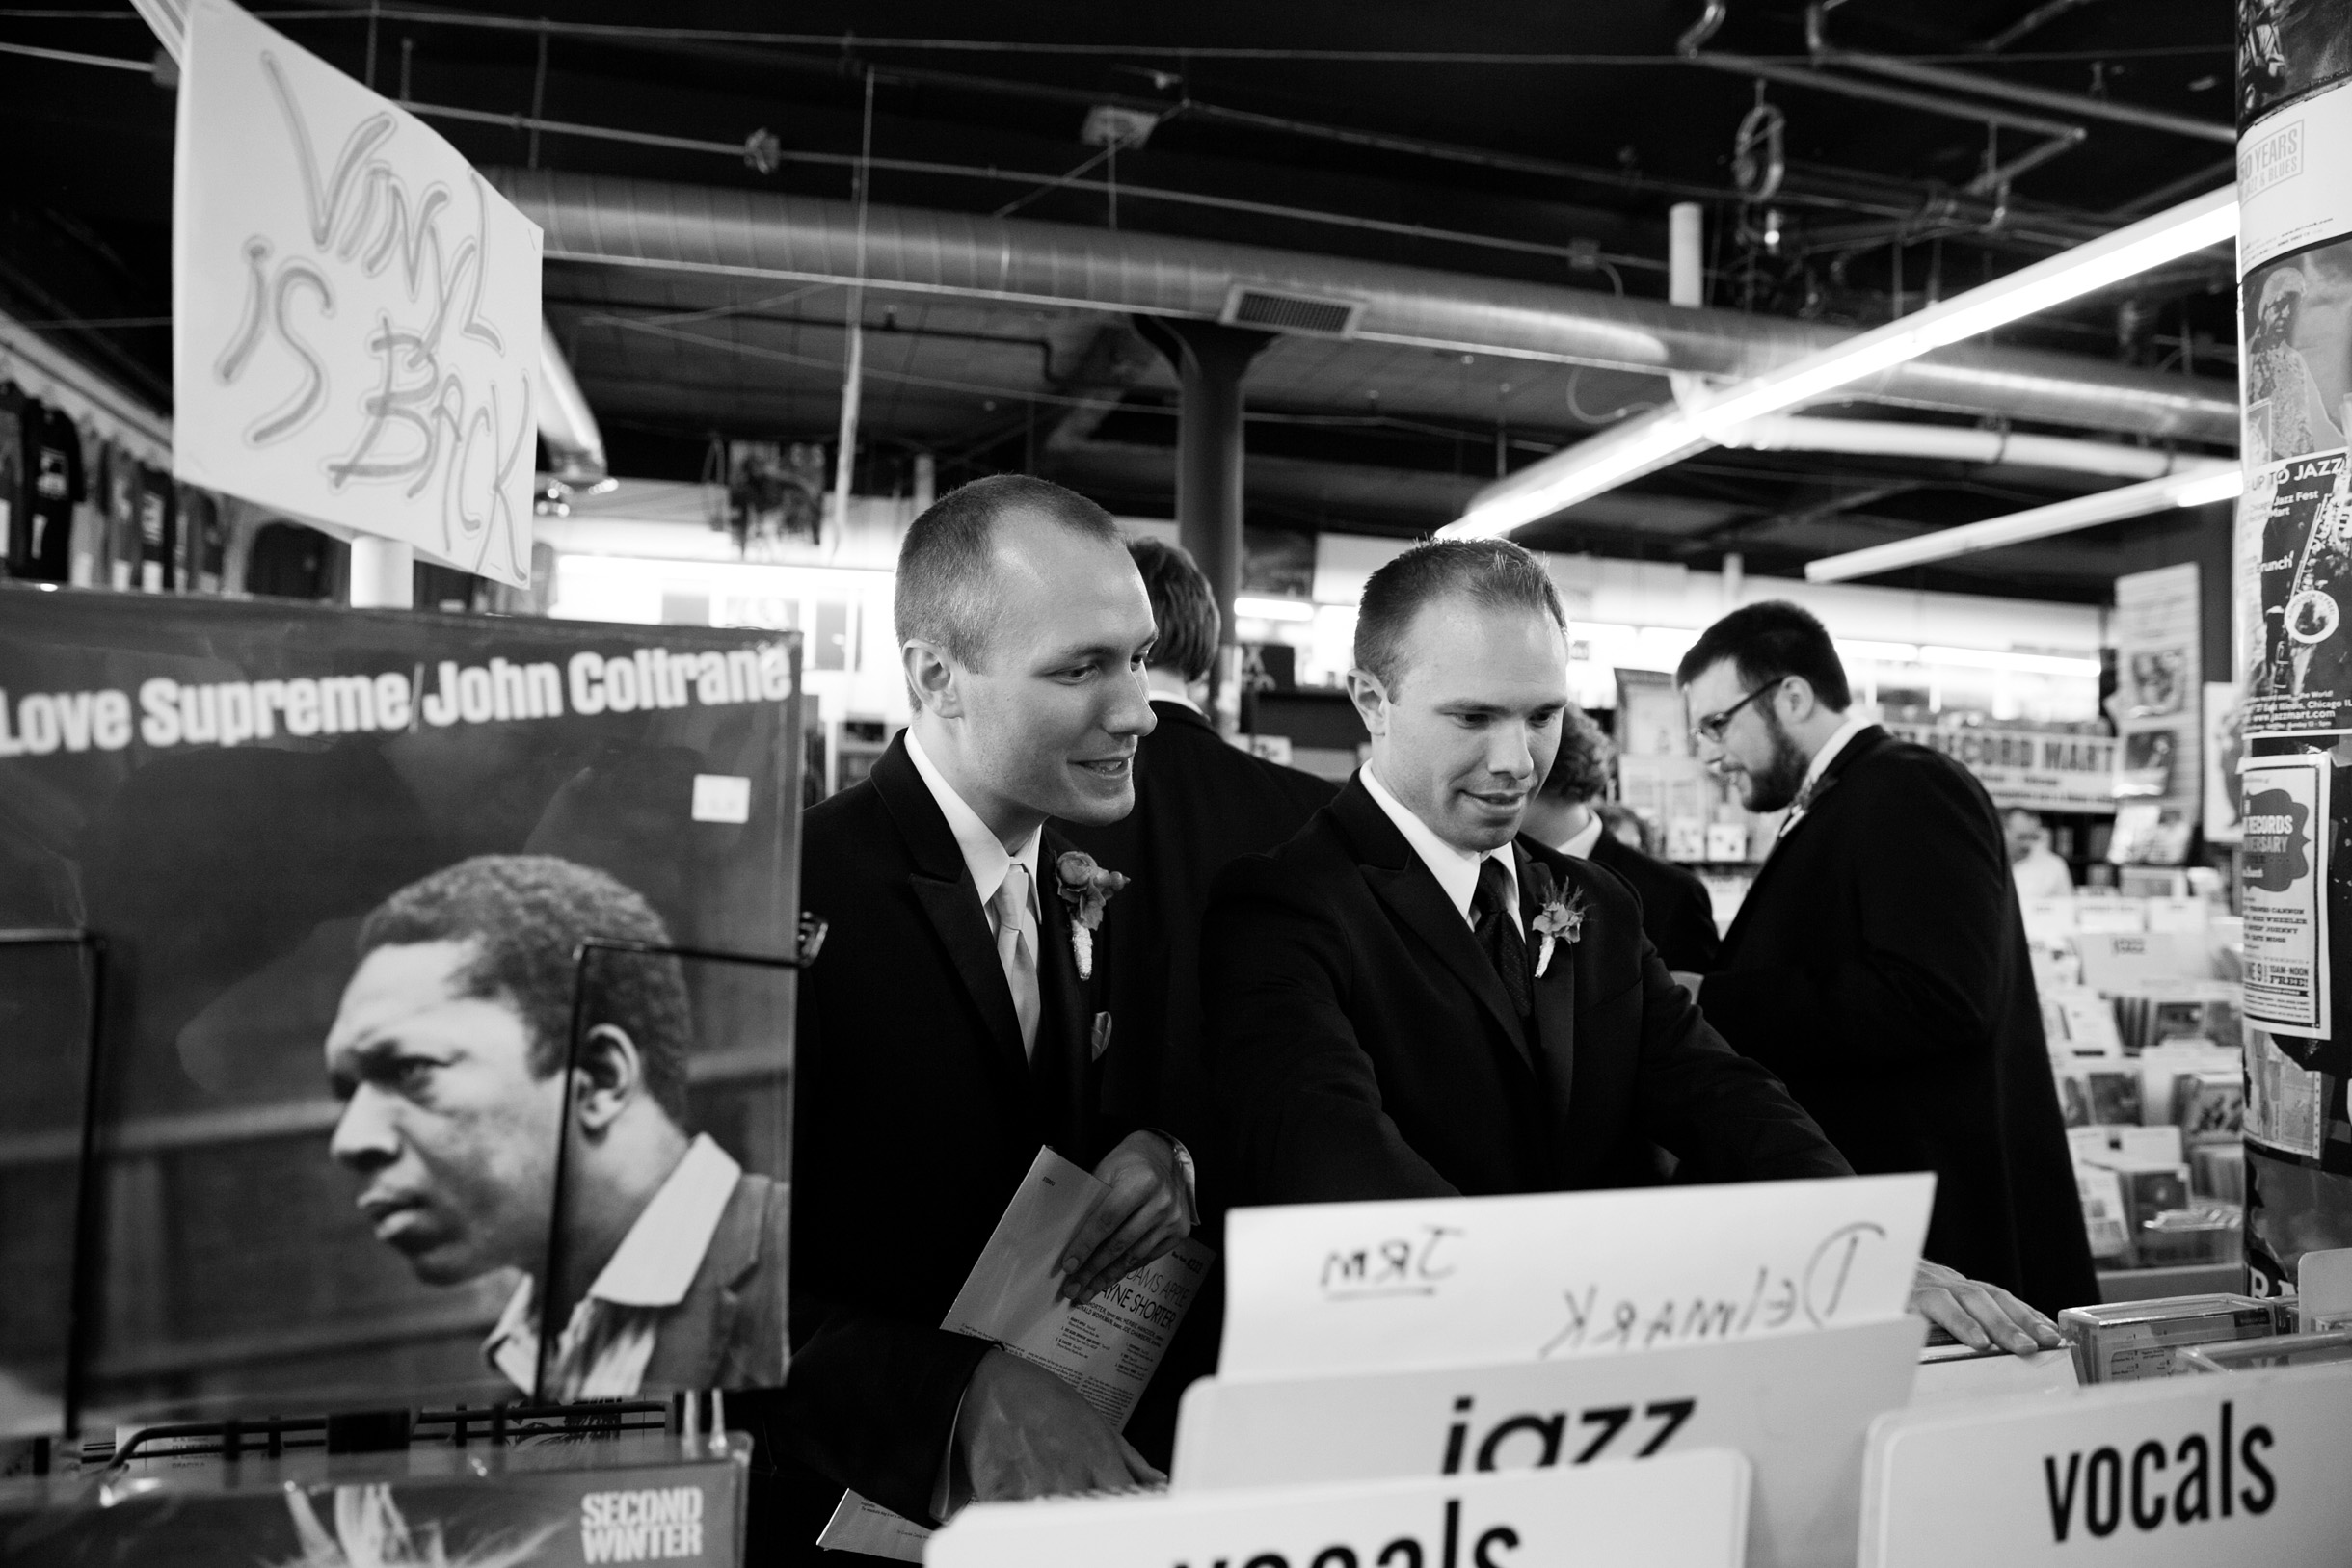 Groom buying vinyl records on his wedding day